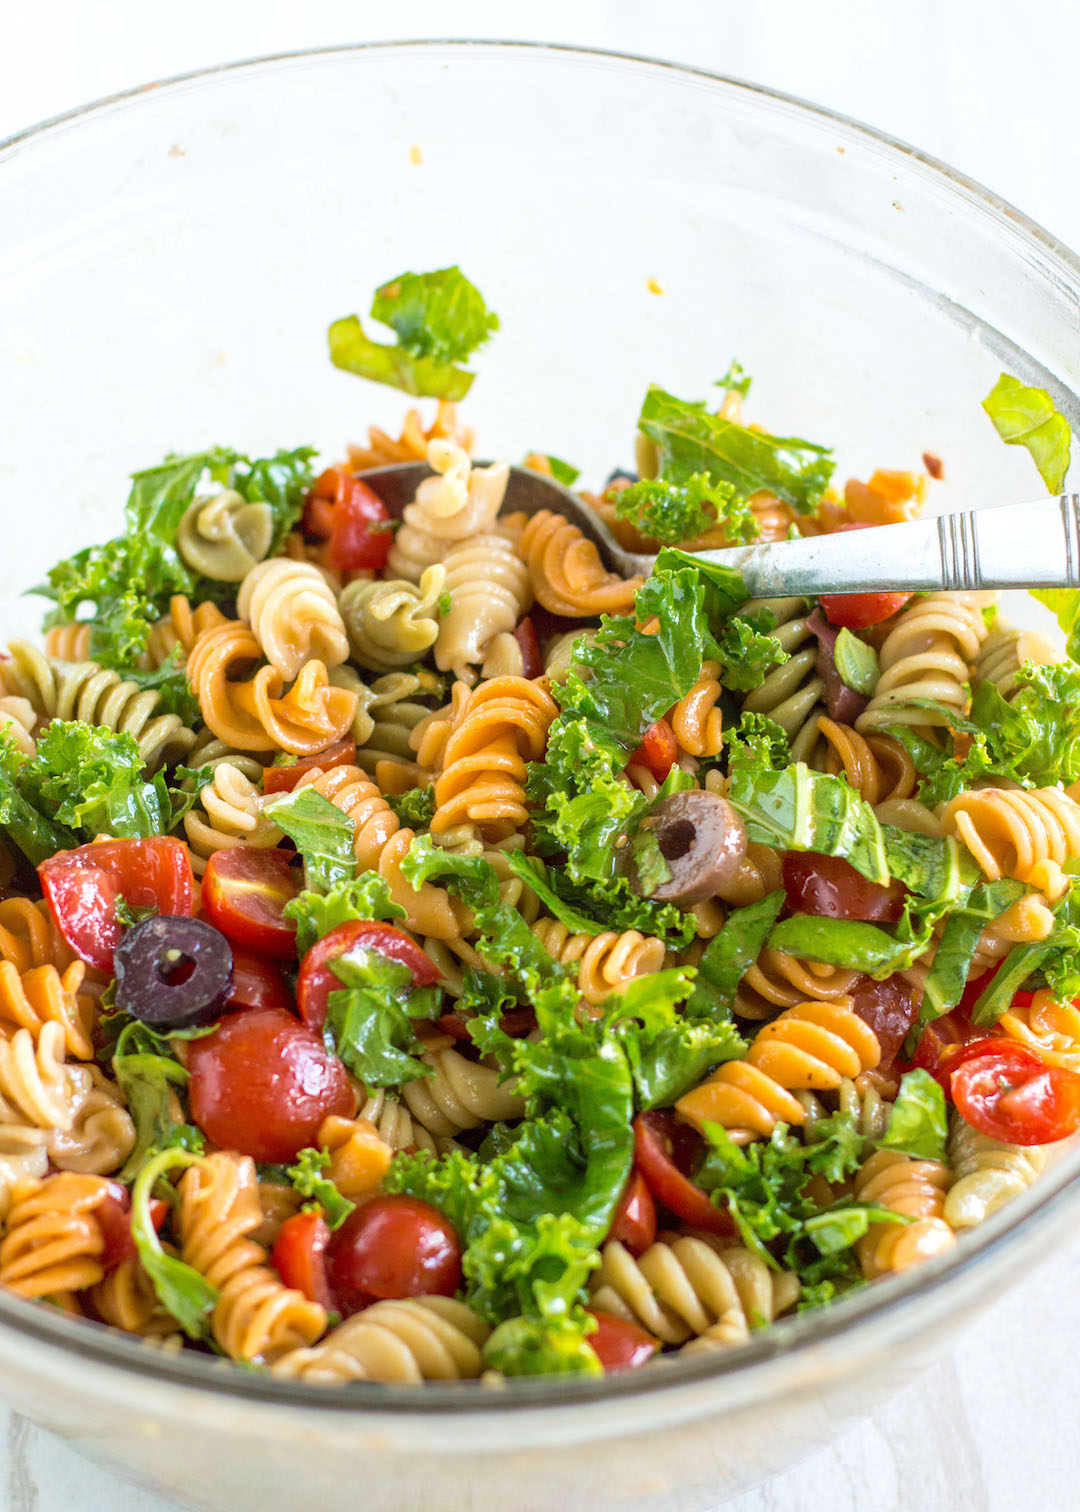 GF Bruschetta Pasta Salad | EASY to make make-ahead lunch | crowd-pleasing dish | gluten free | vegetarian | healthy pasta salad